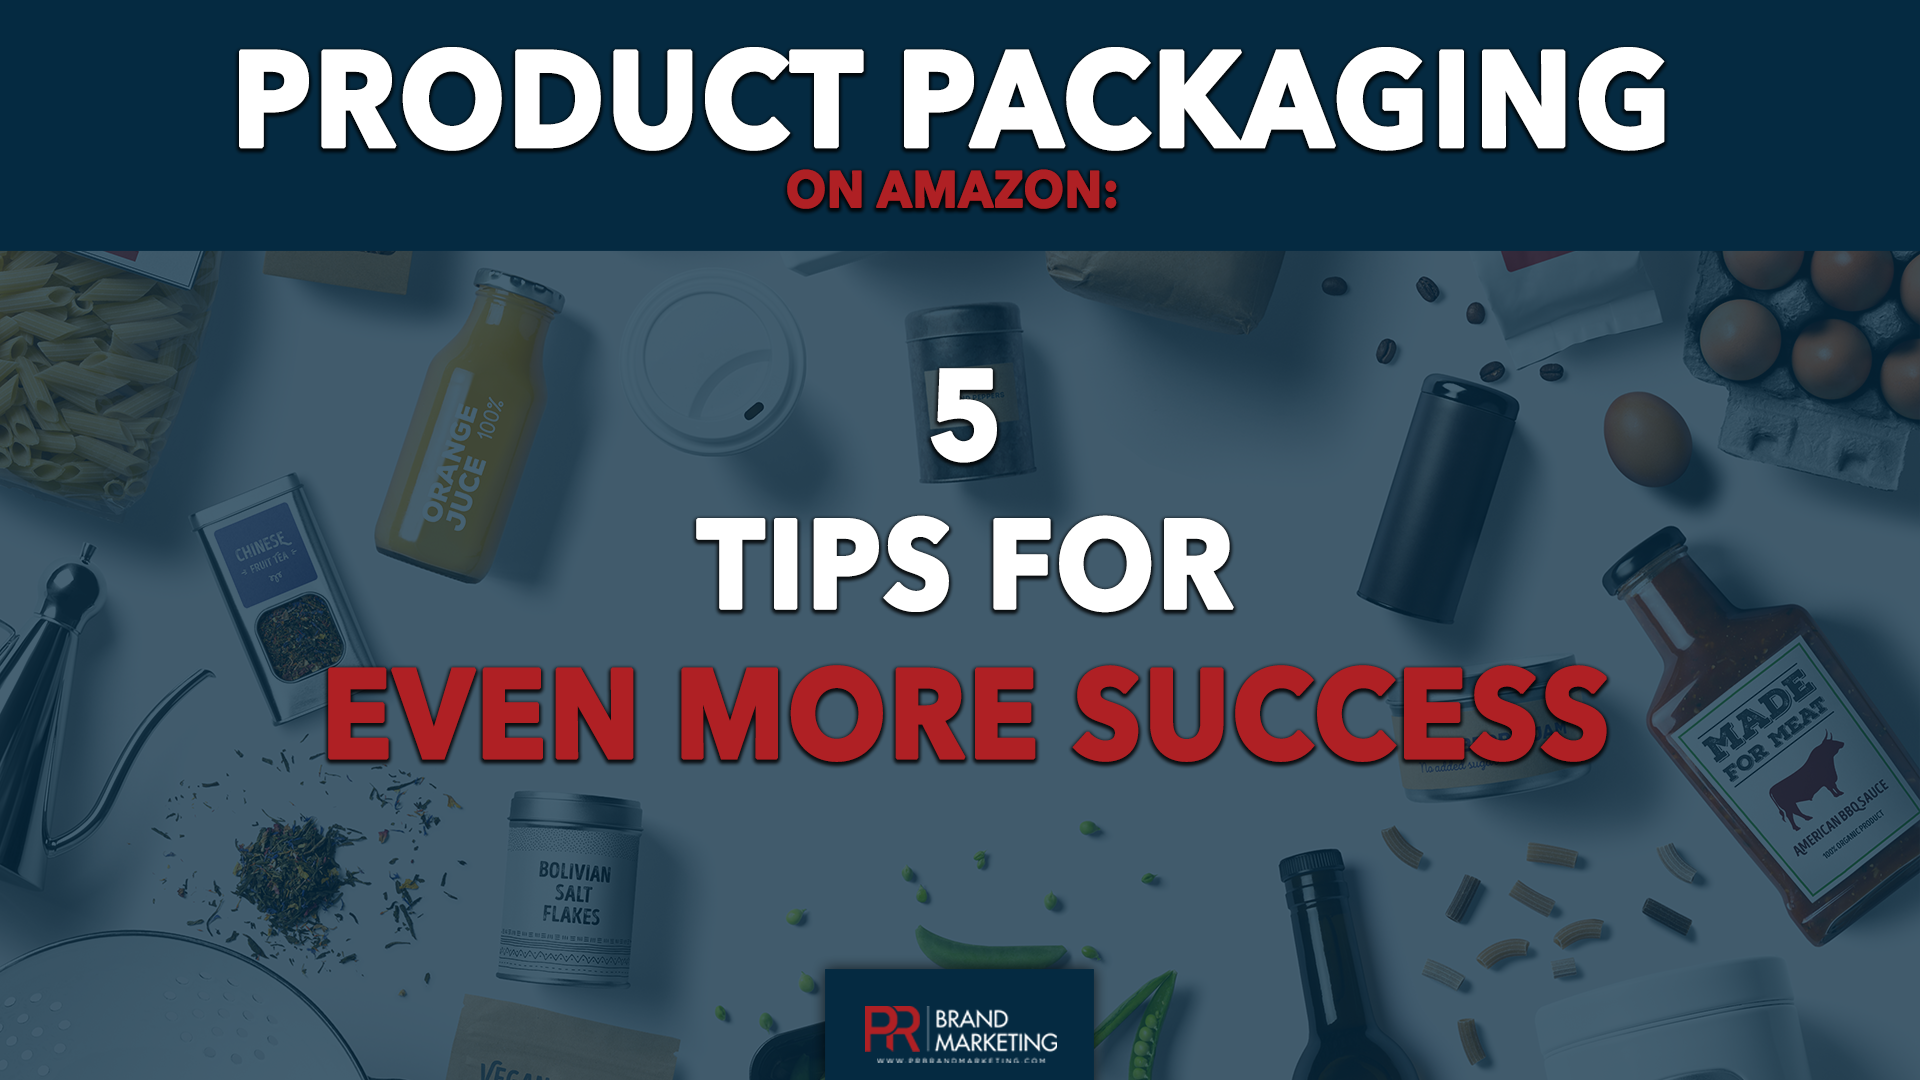 Amazon Product Packaging